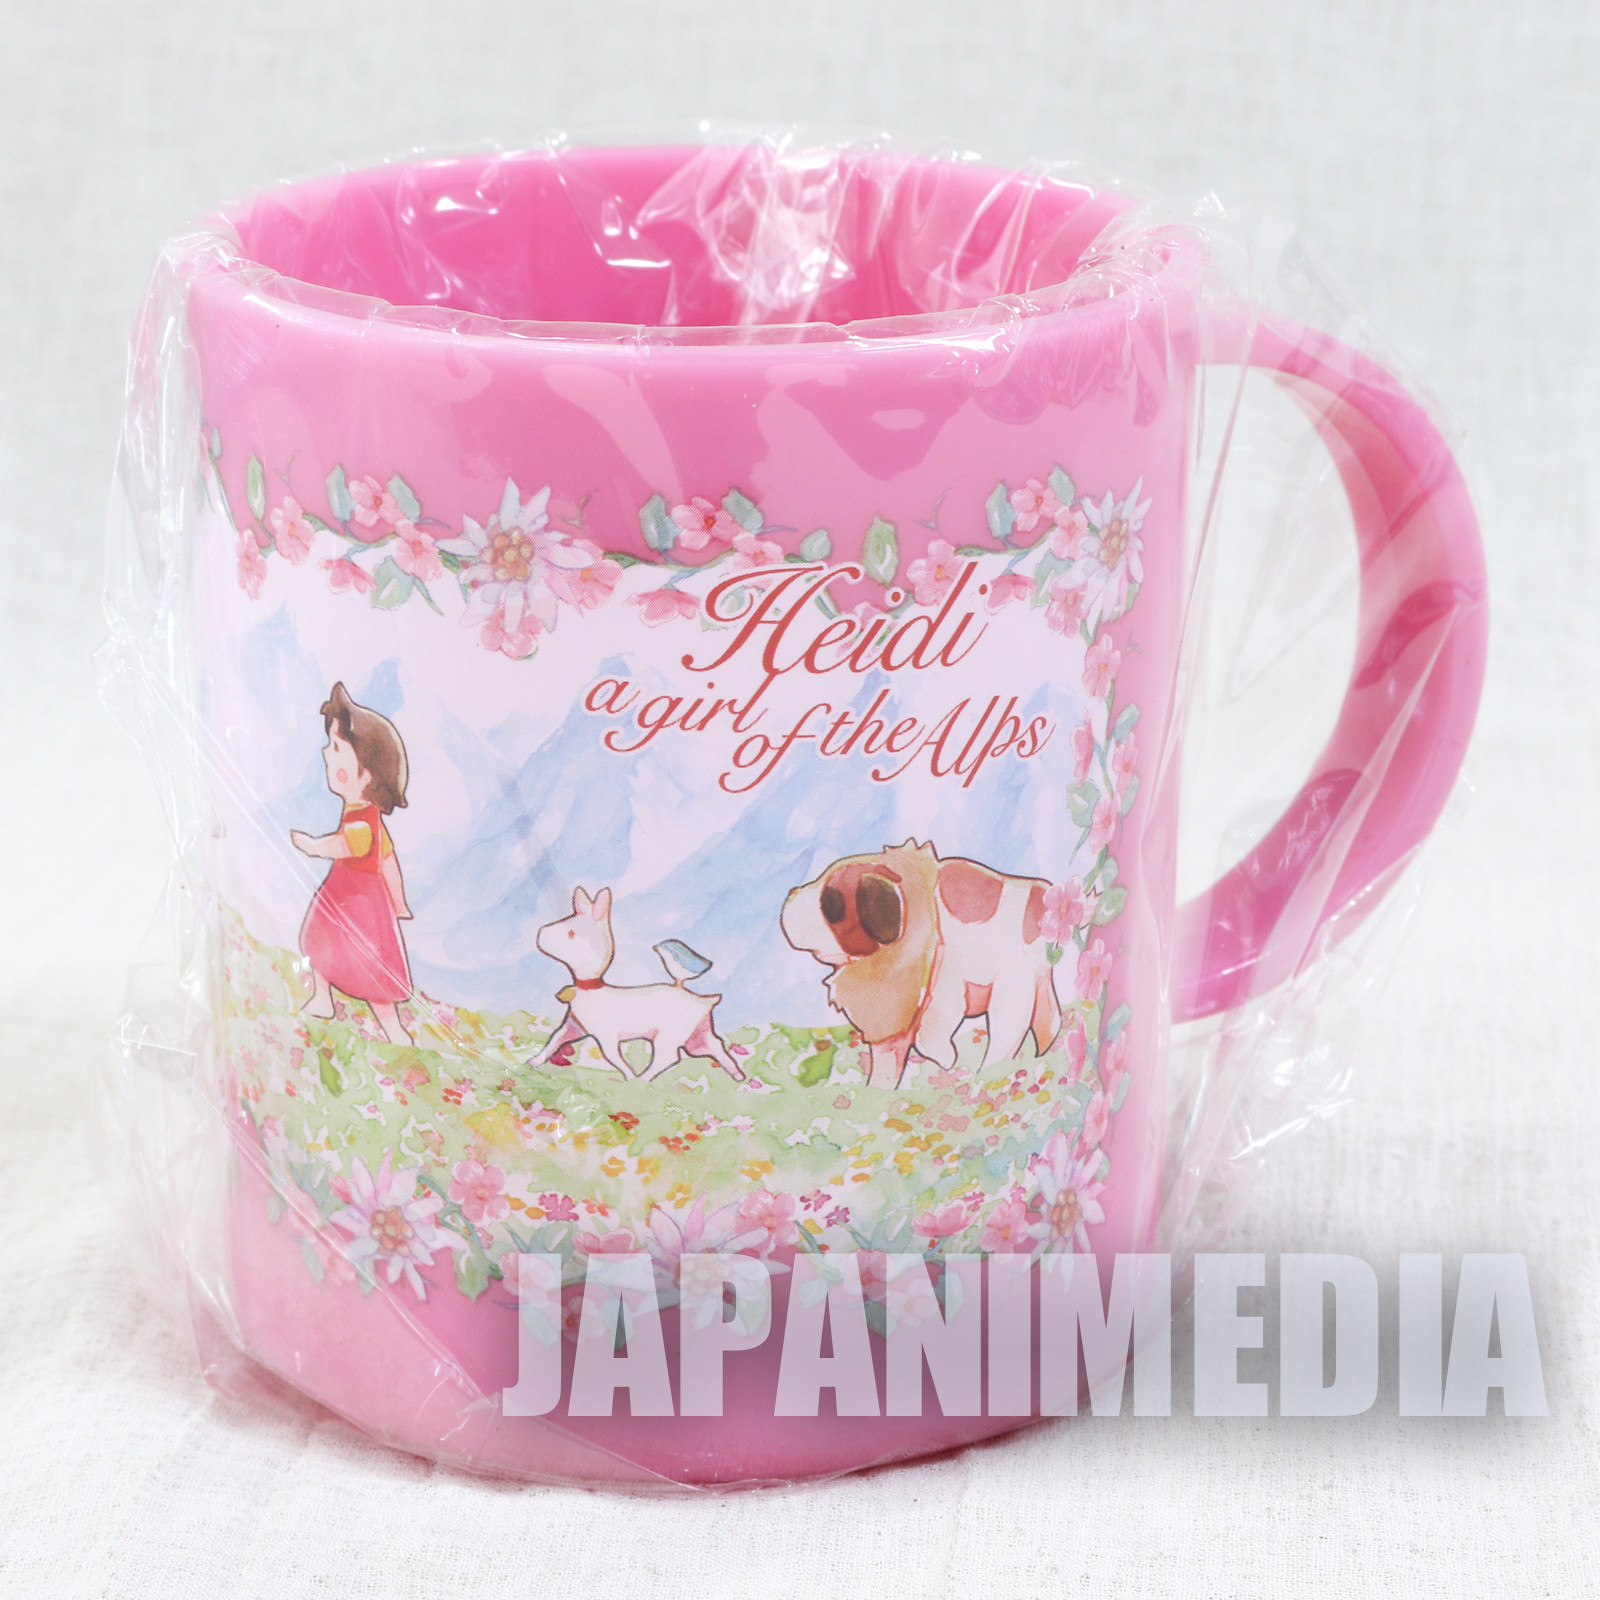 Heidi Girl of the Alps Plastic Mug Pink ver. JAPAN ANIME